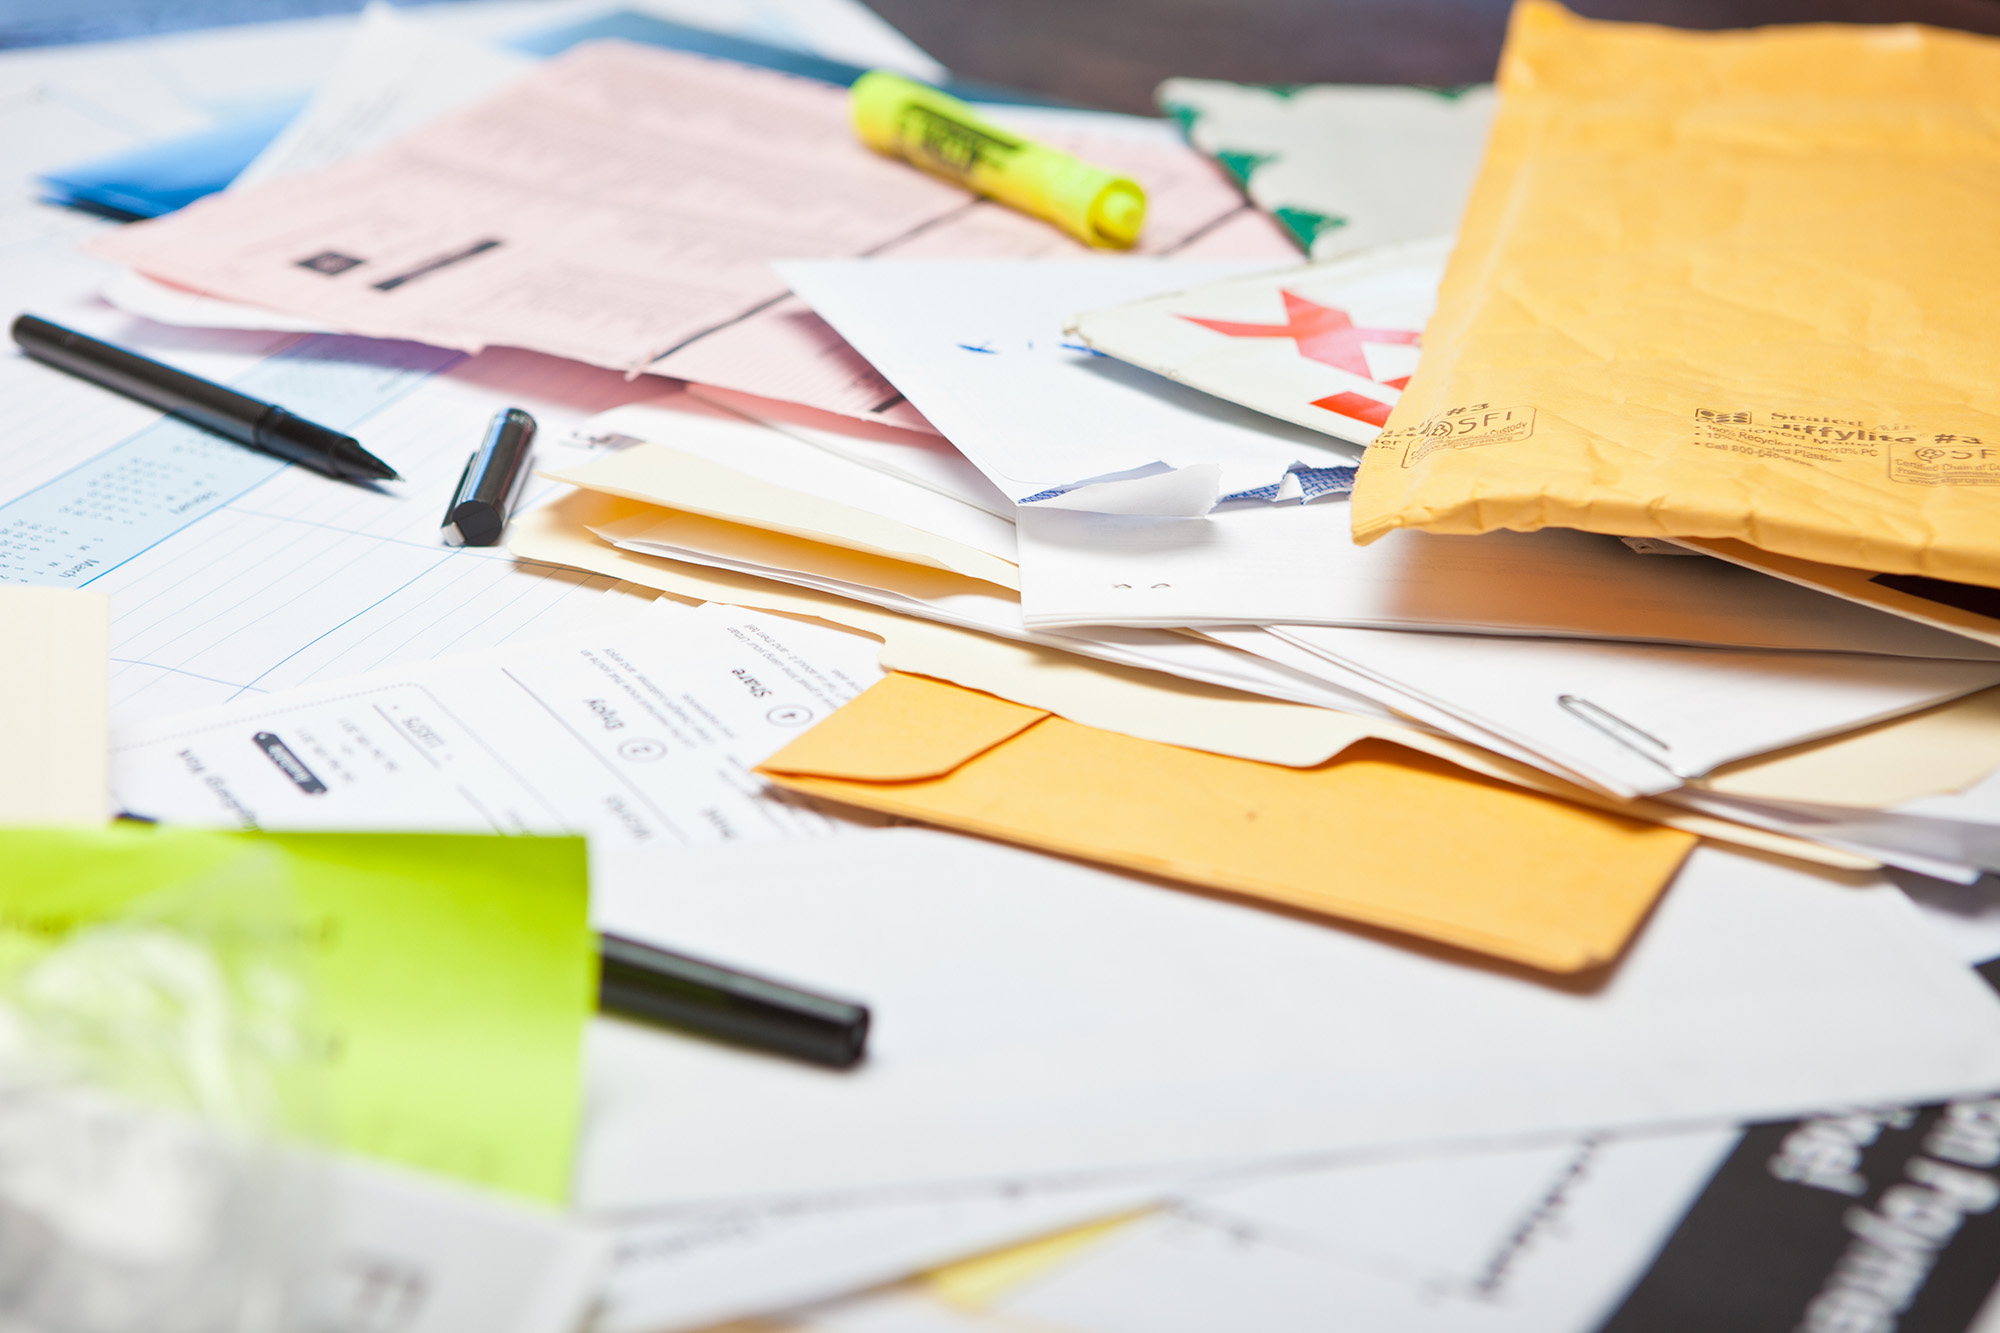 Cluttered-documents-papers-on-desk-SMALL.jpg